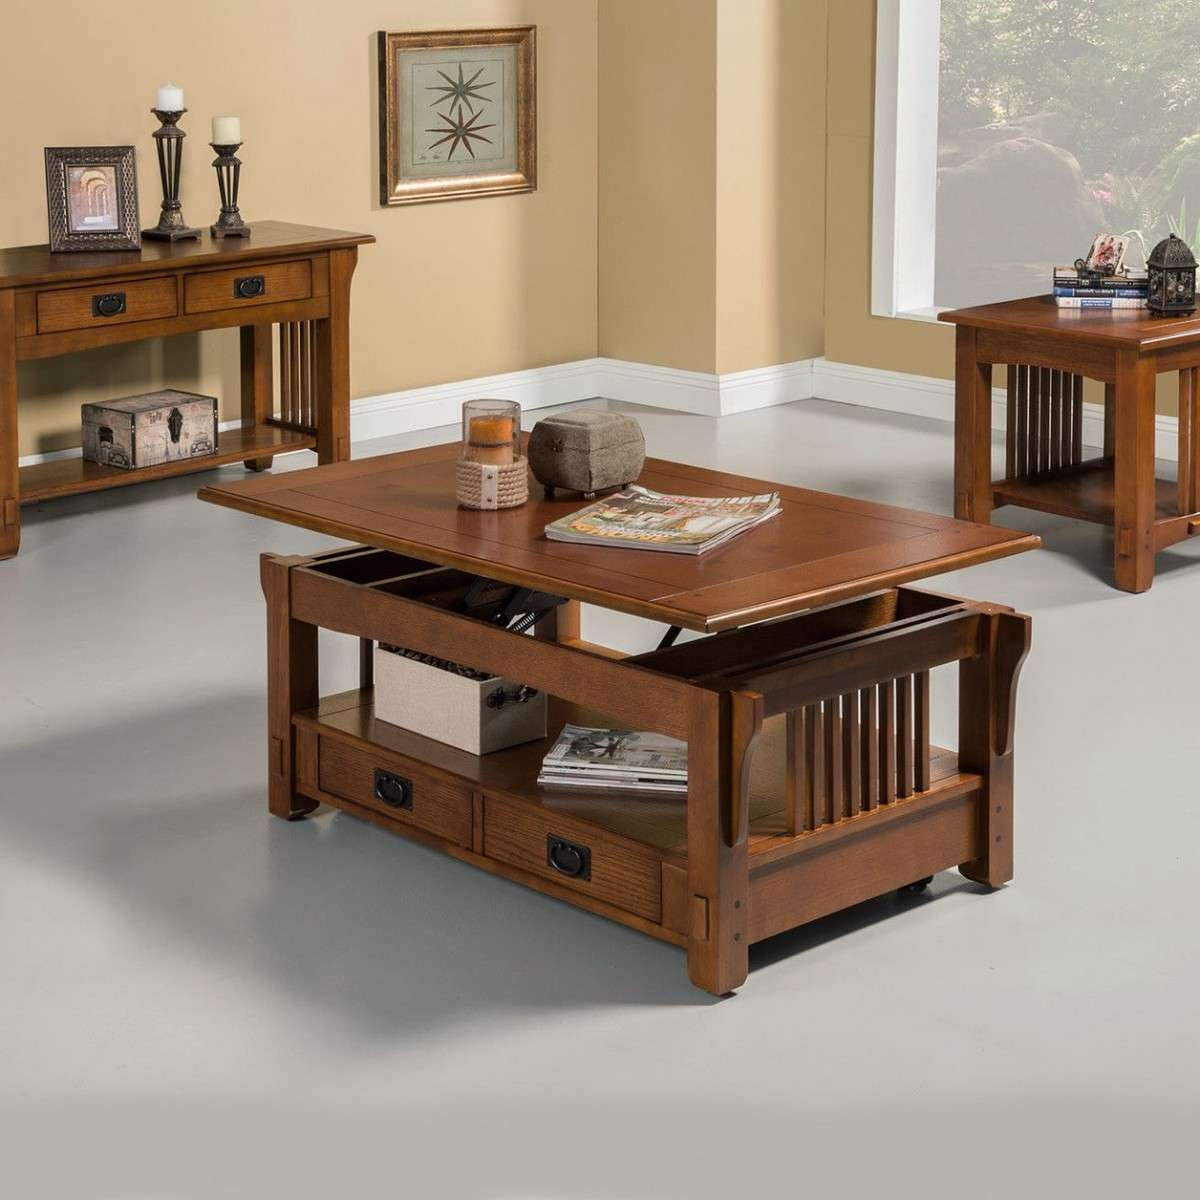 Wood Furniture Coffee Table With Lift Top Storage In Famous Coffee Tables With Lift Top Storage (View 20 of 20)